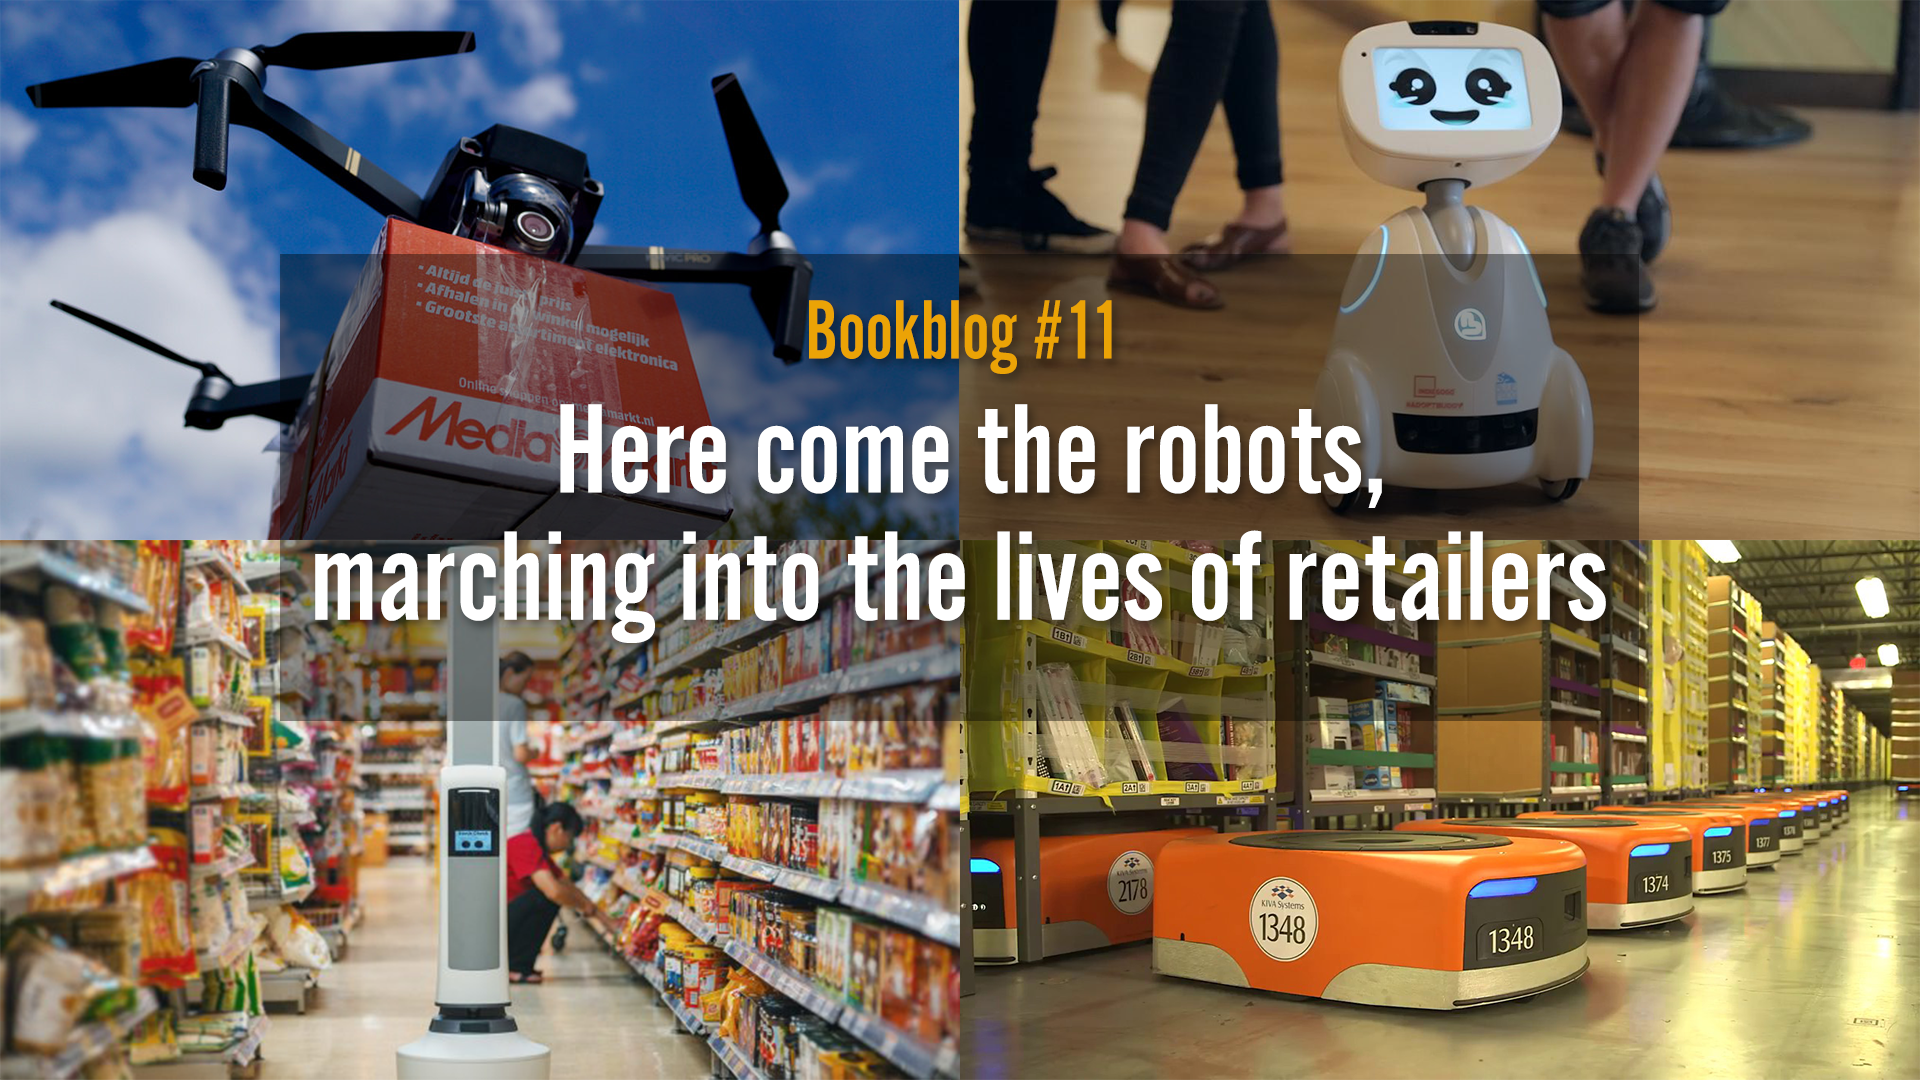 Here come the robots, marching into the lives of retailers